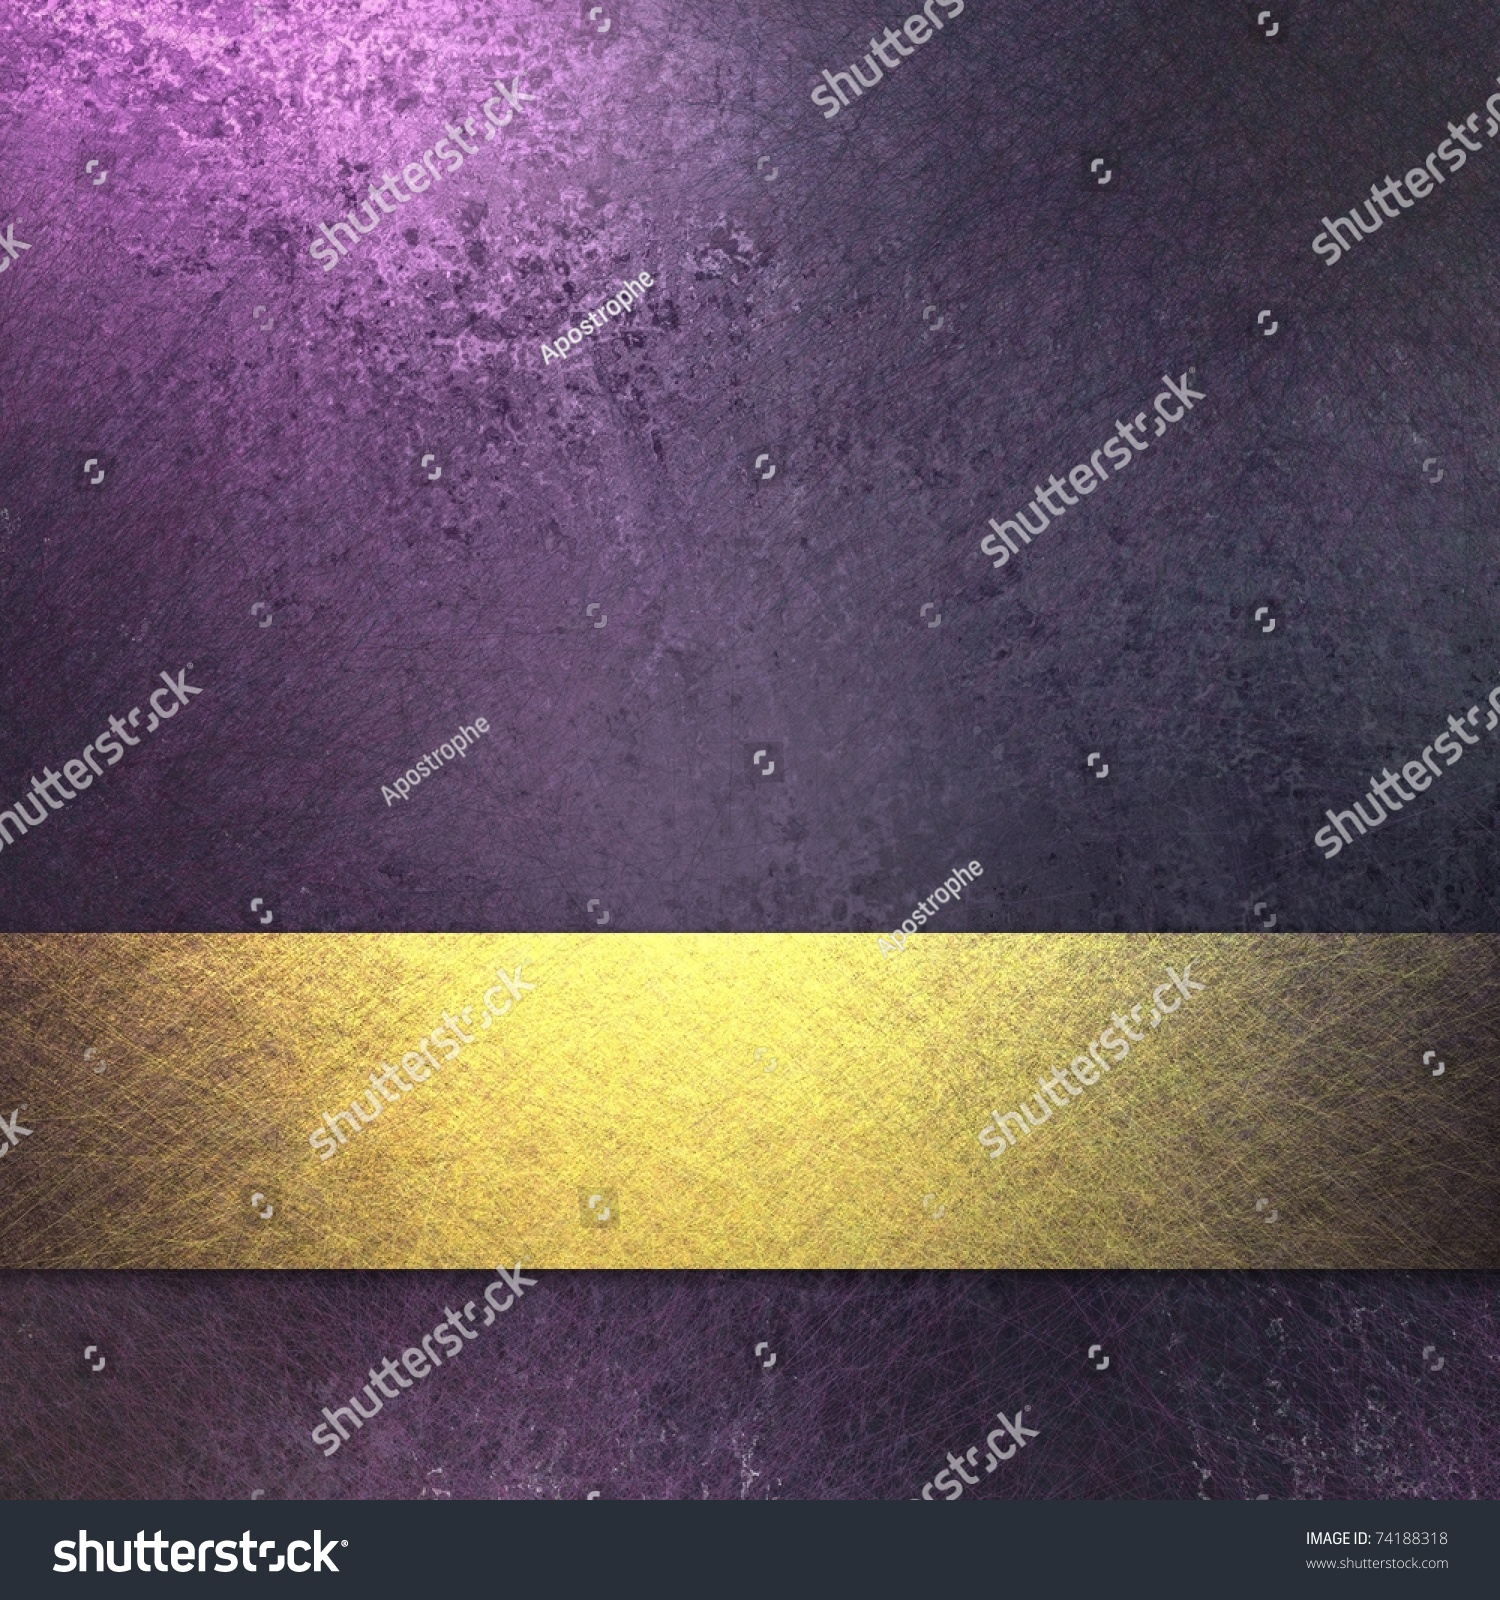 Rich Royal Purple Background Dark Grunge Stock